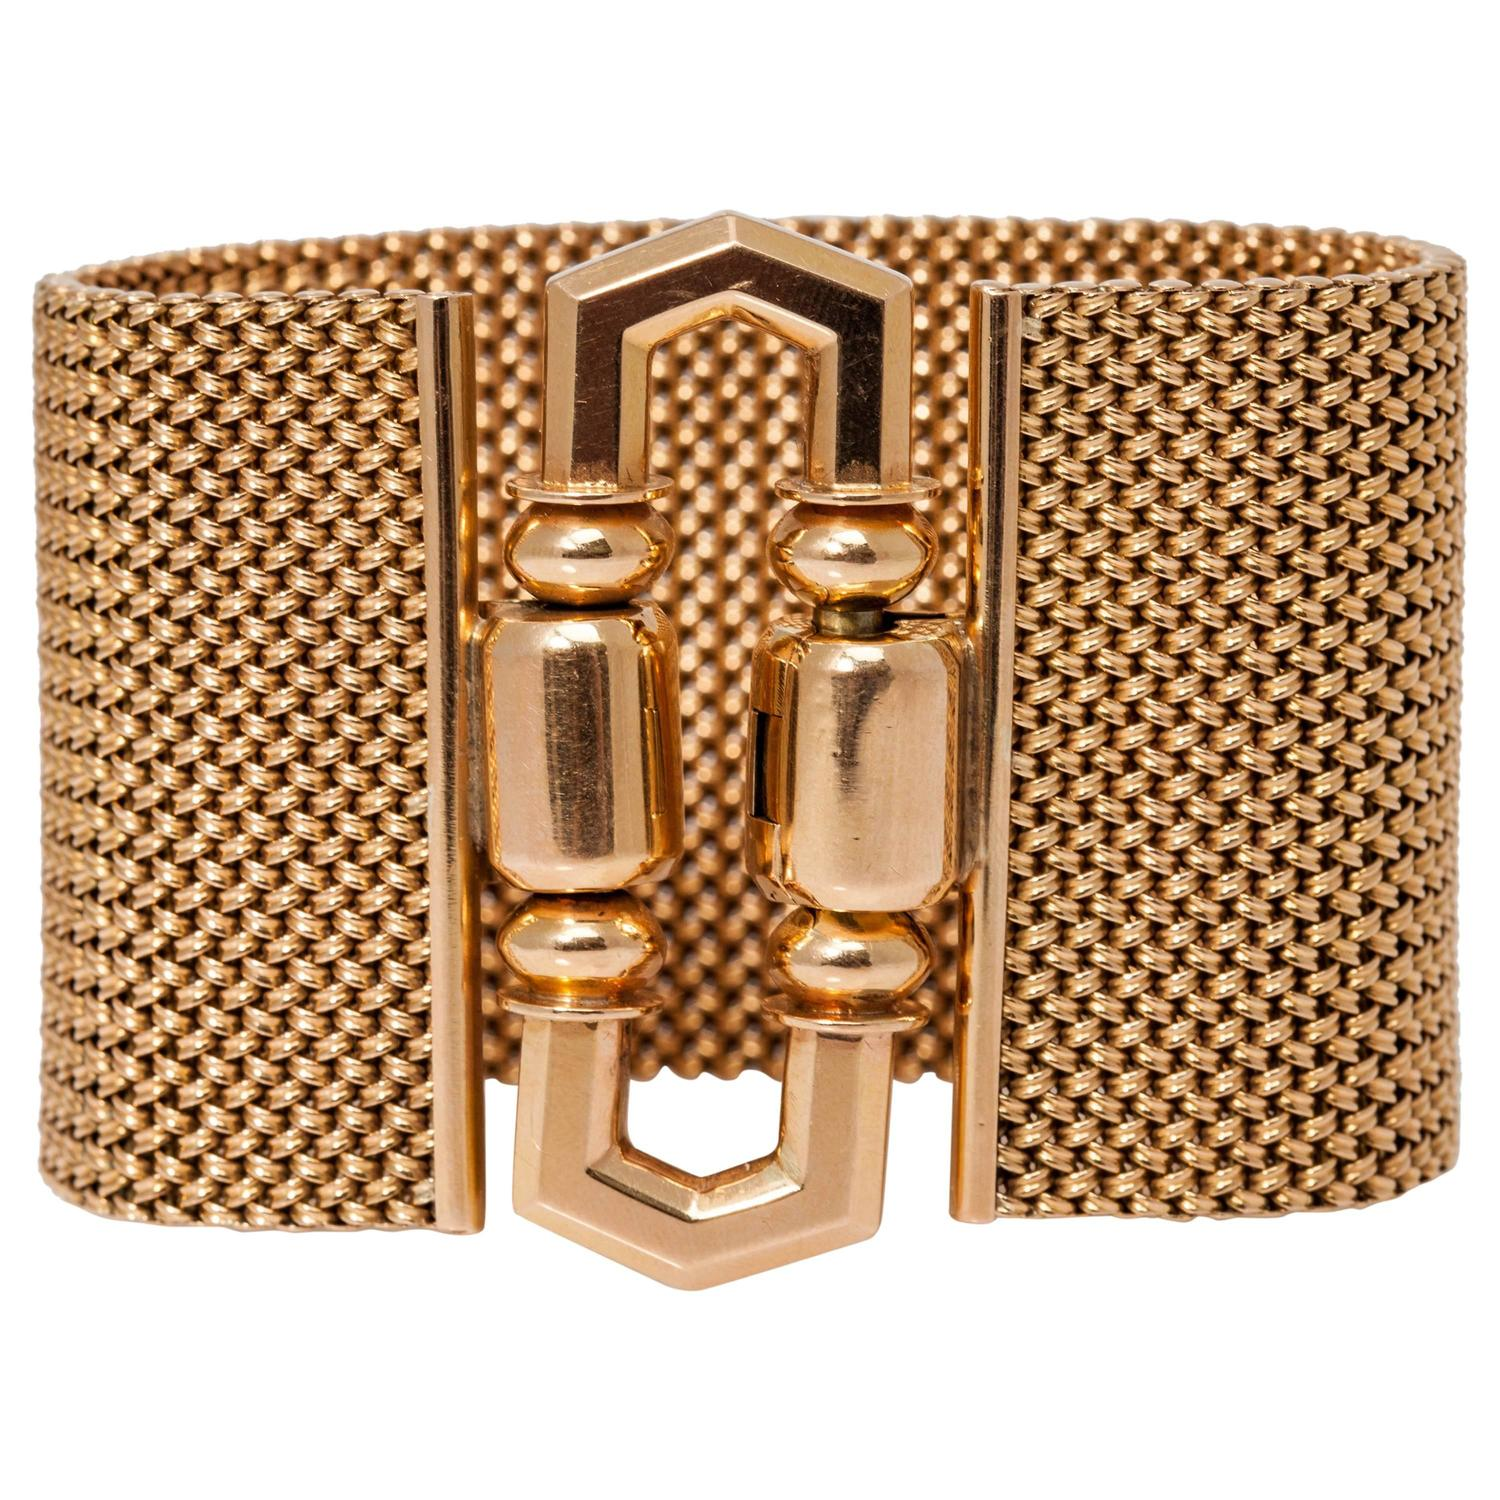 accented id diamond link bracelets rose j z gold jewelry sale at heavy retro for bracelet